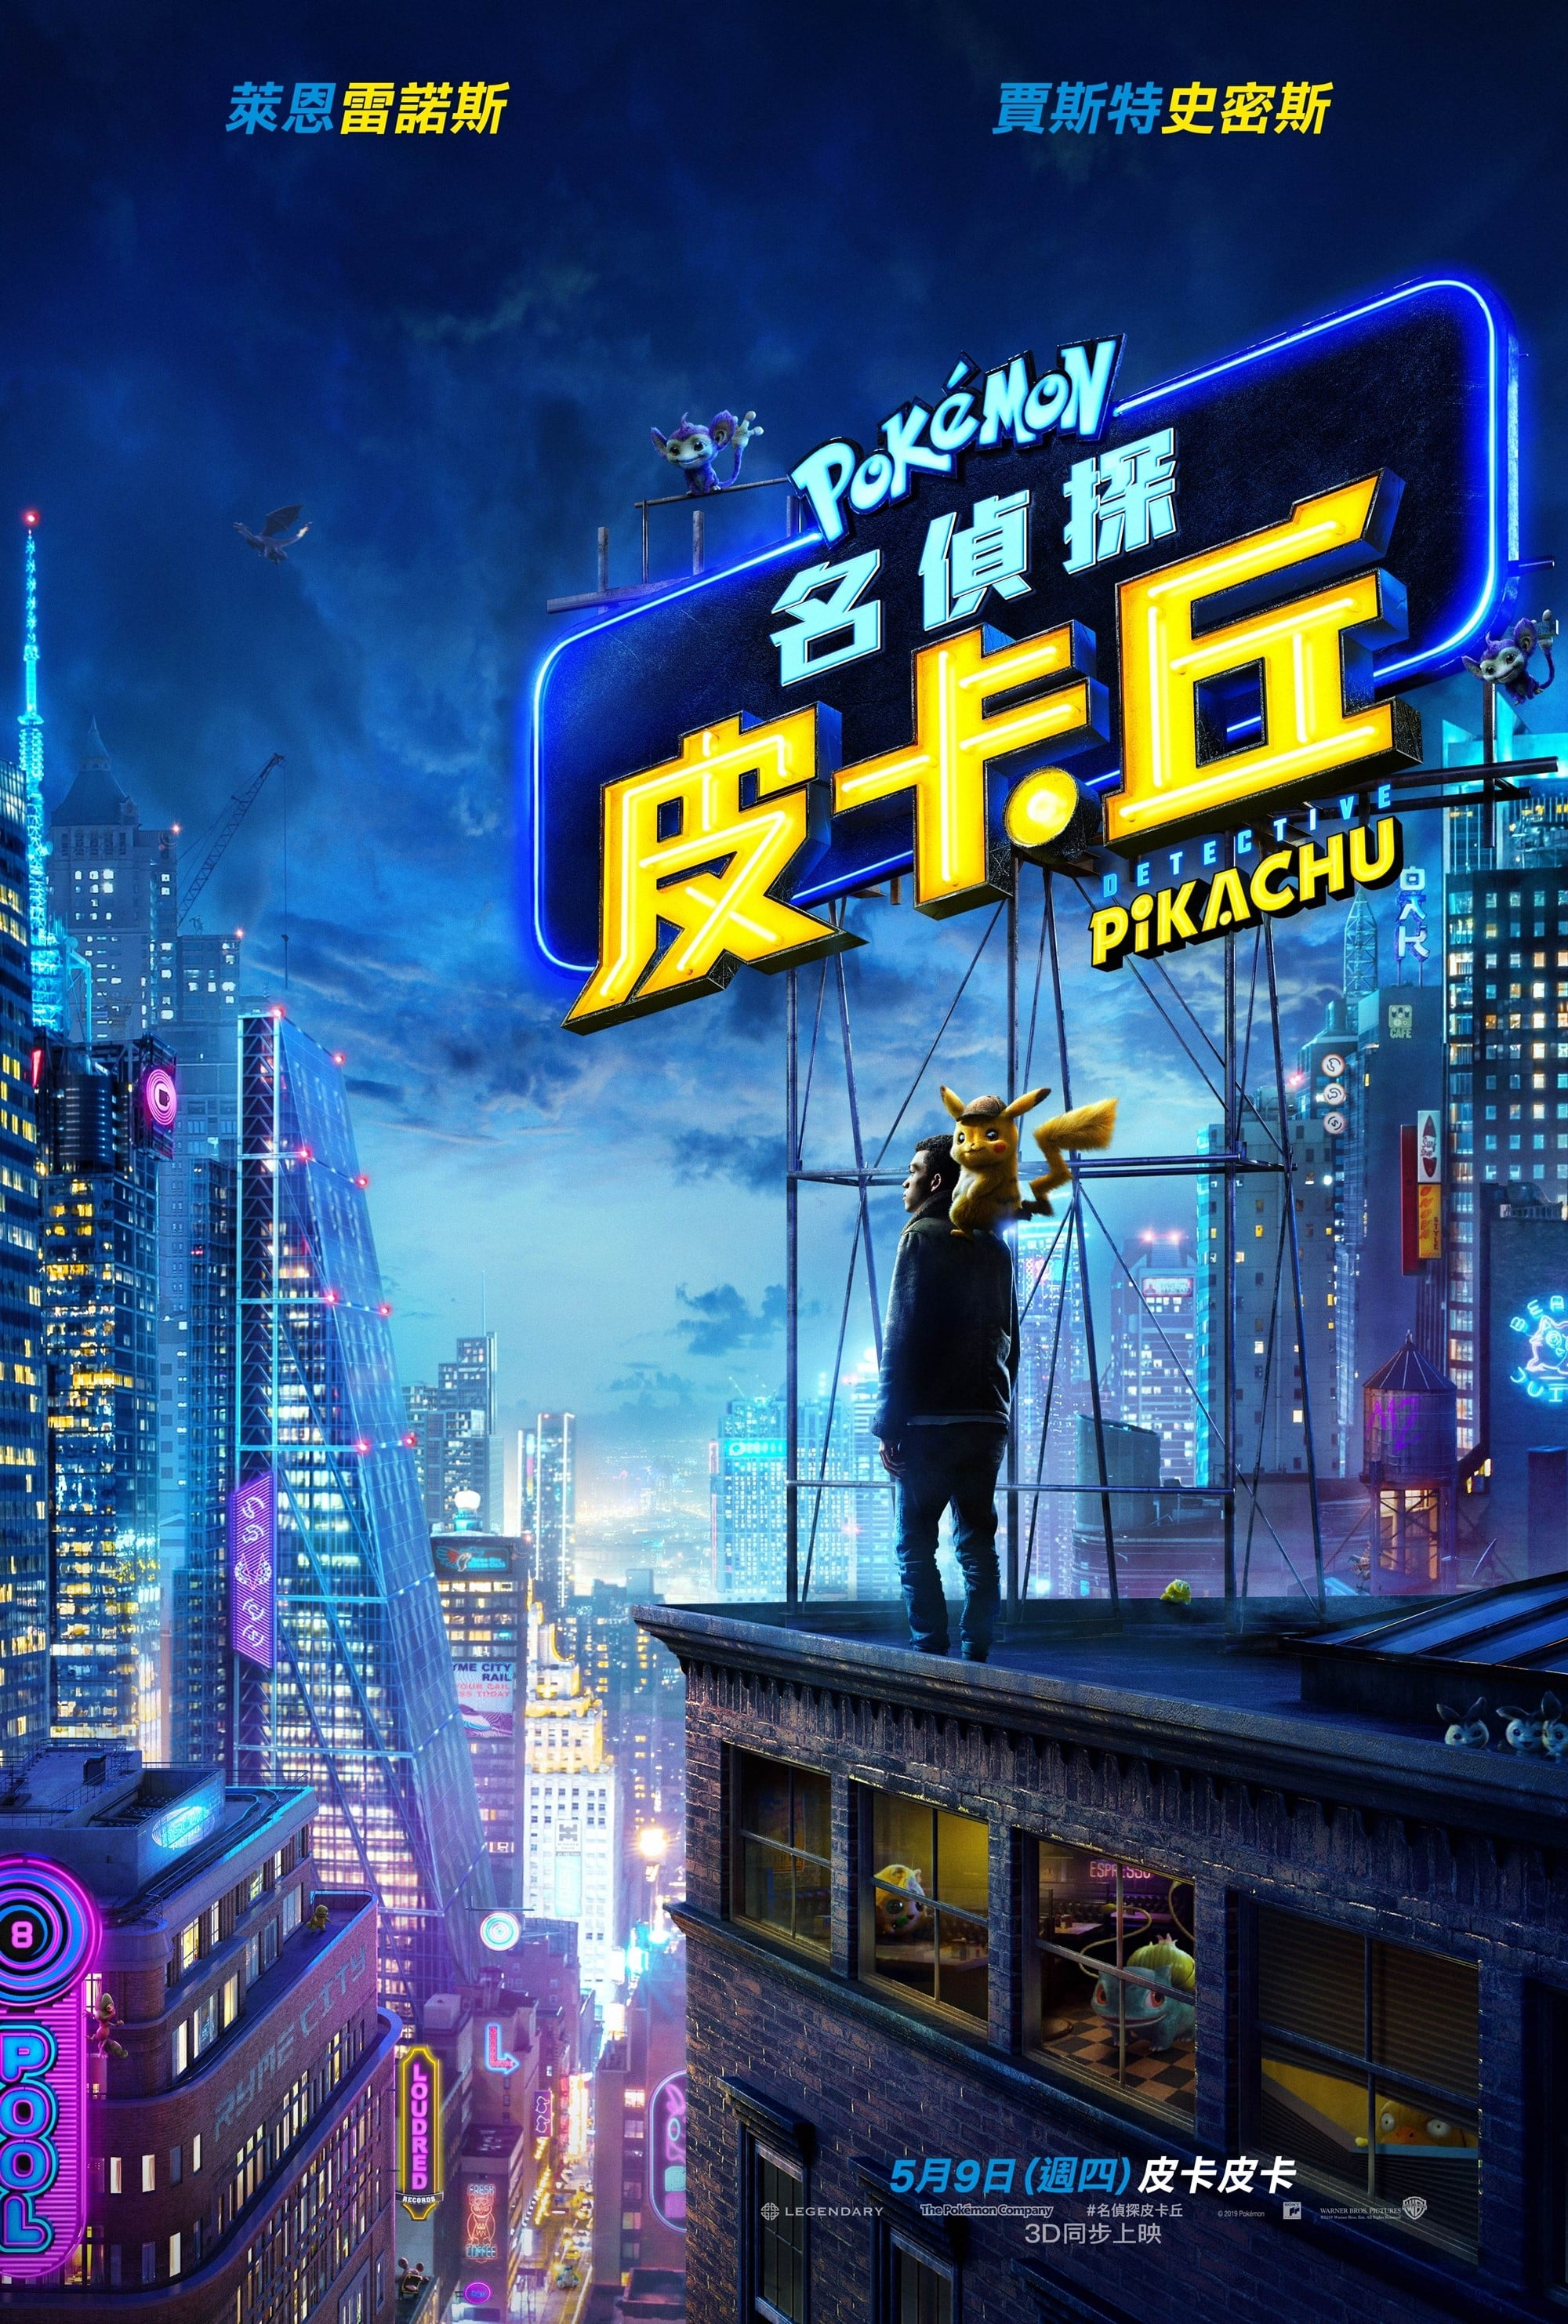 Pikachu Film Stream